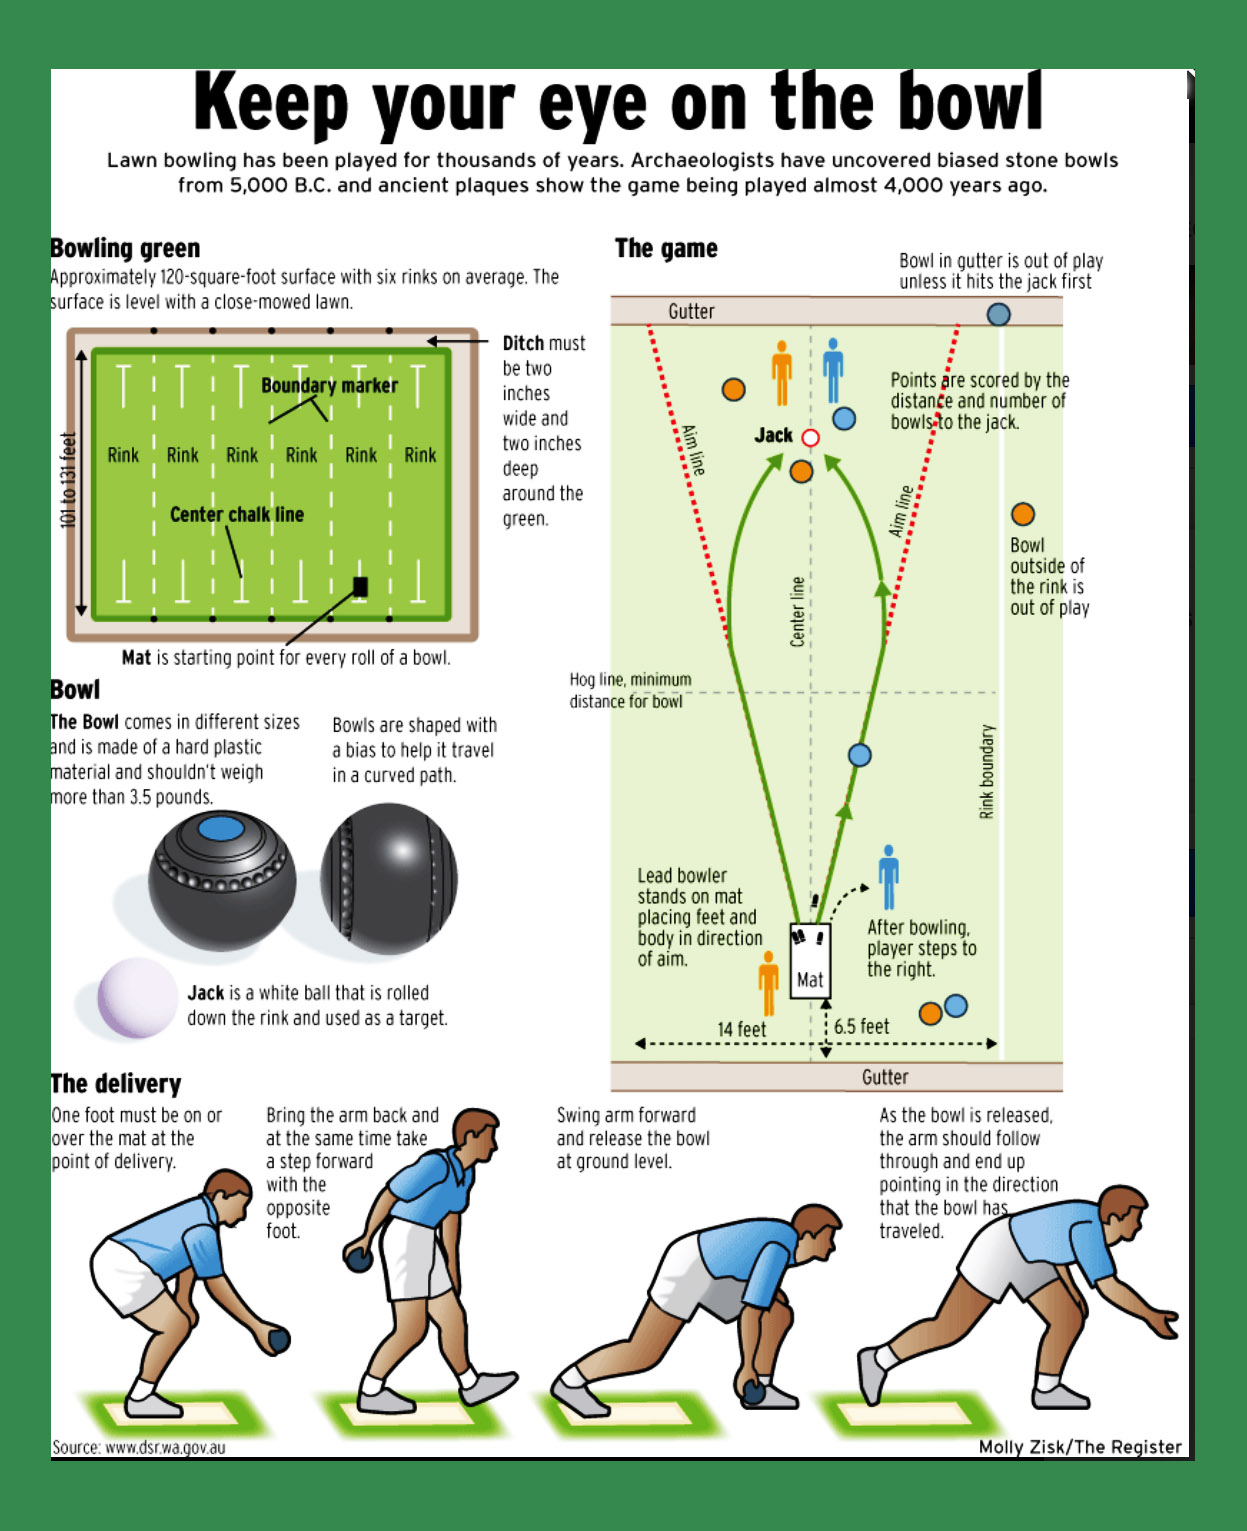 Barr bowling club beginners guide in singles the winner is usually the first to score 21 points in the other three formats the winner is the team that scores the most points over a set geenschuldenfo Choice Image